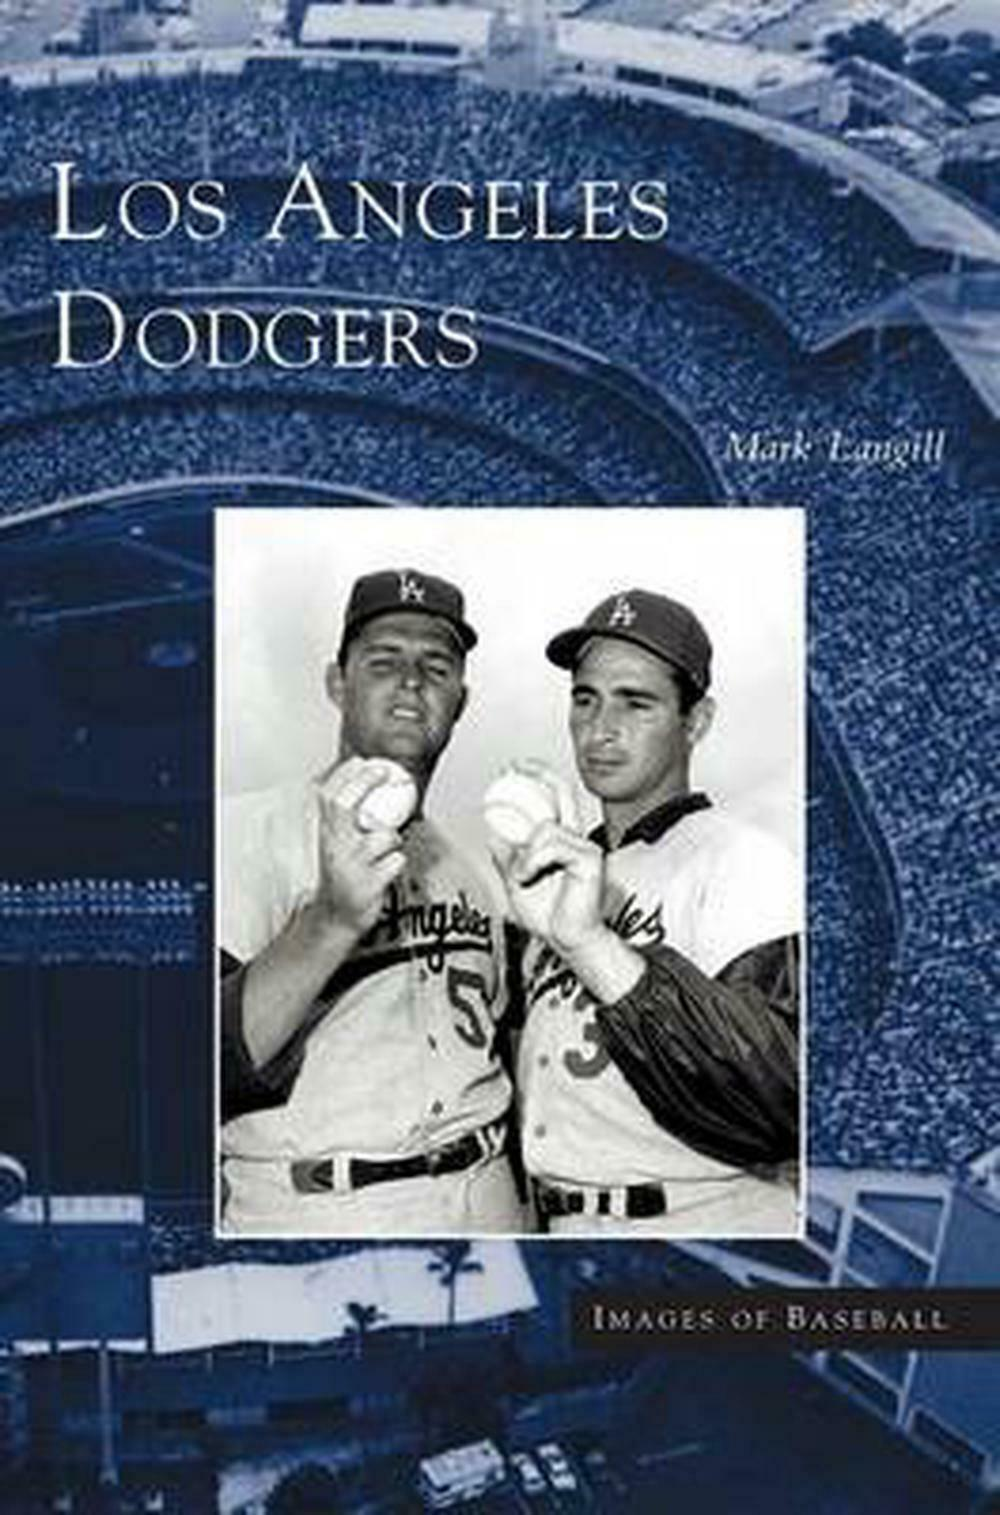 Los angeles dodgers by mark langill english hardcover book free 1 of 1only 1 available fandeluxe Gallery